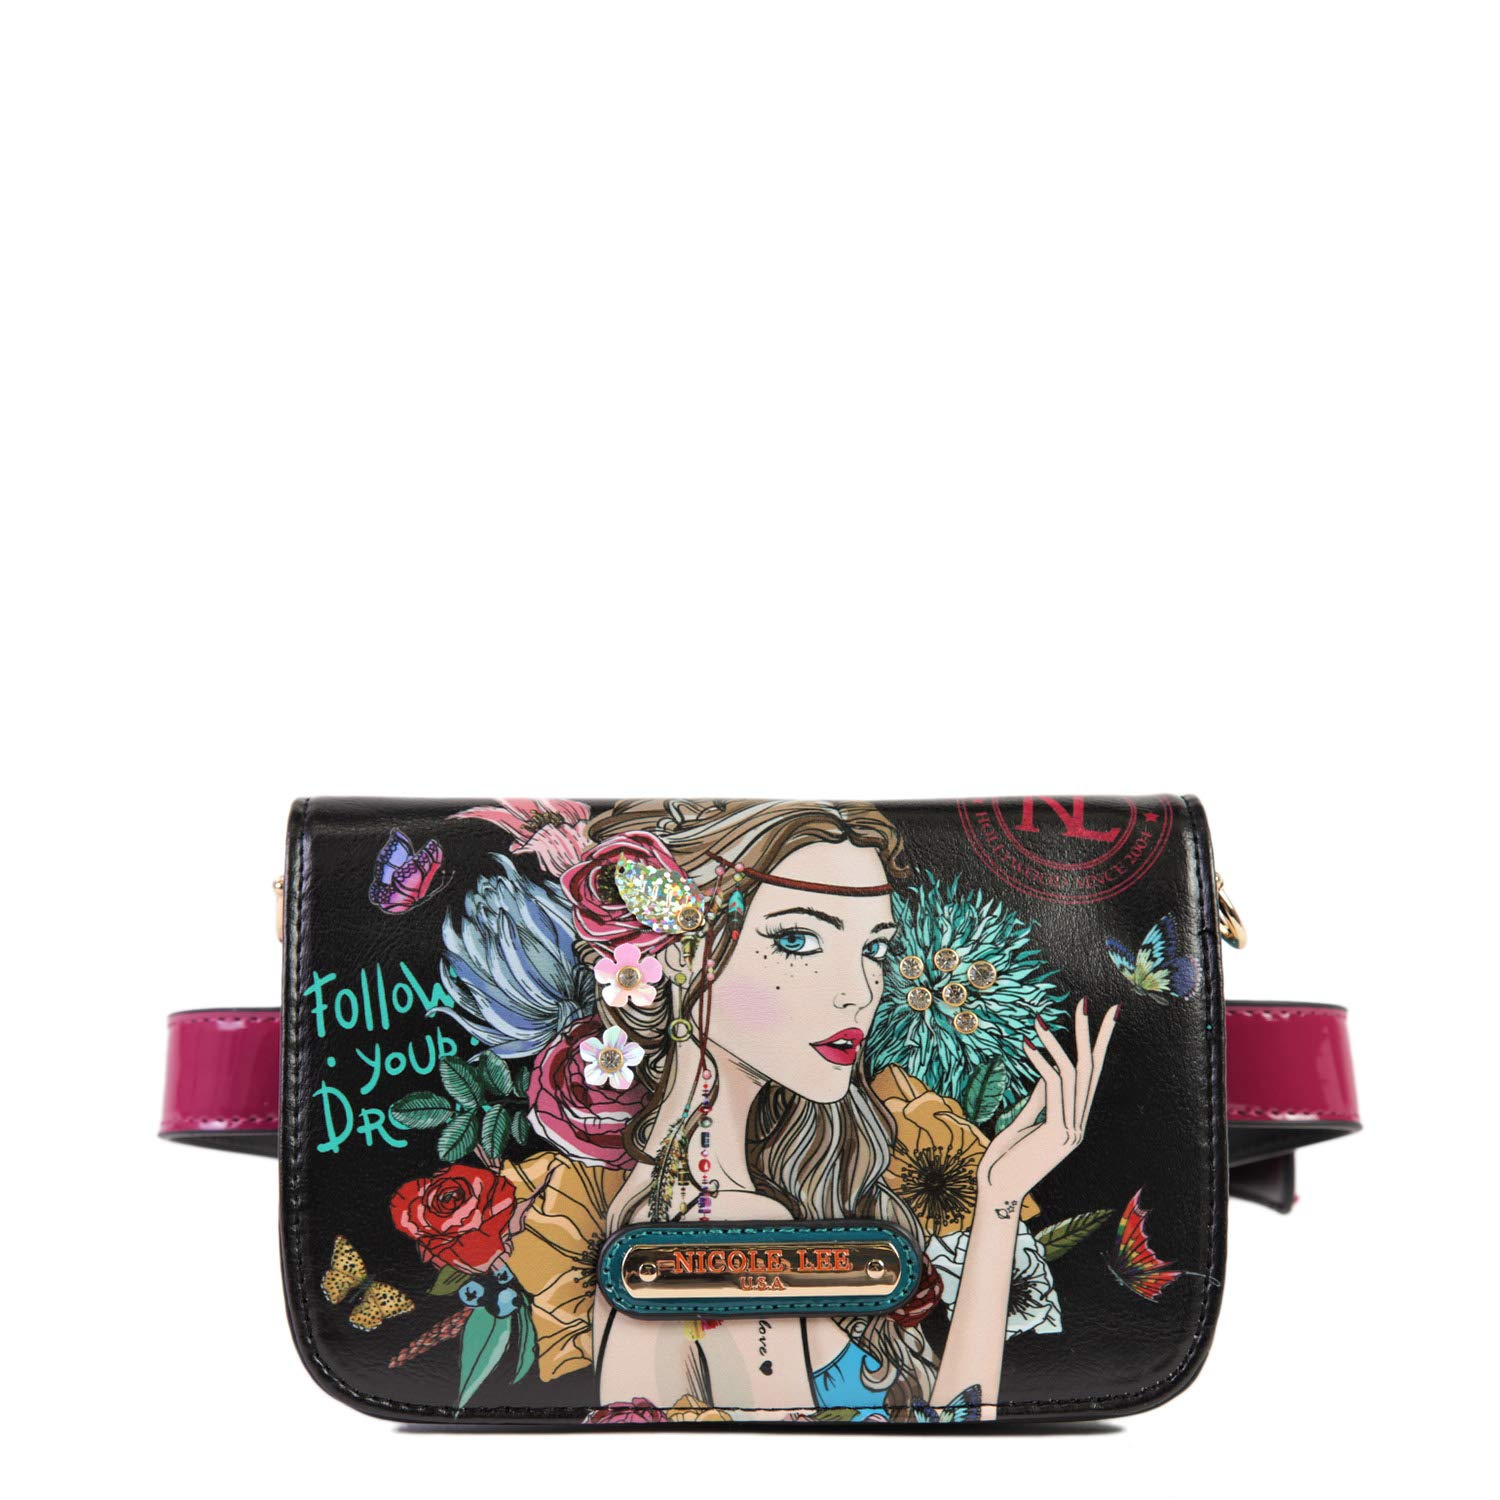 Bohemian Style Convertible Fanny Pack With Link Chain Strap